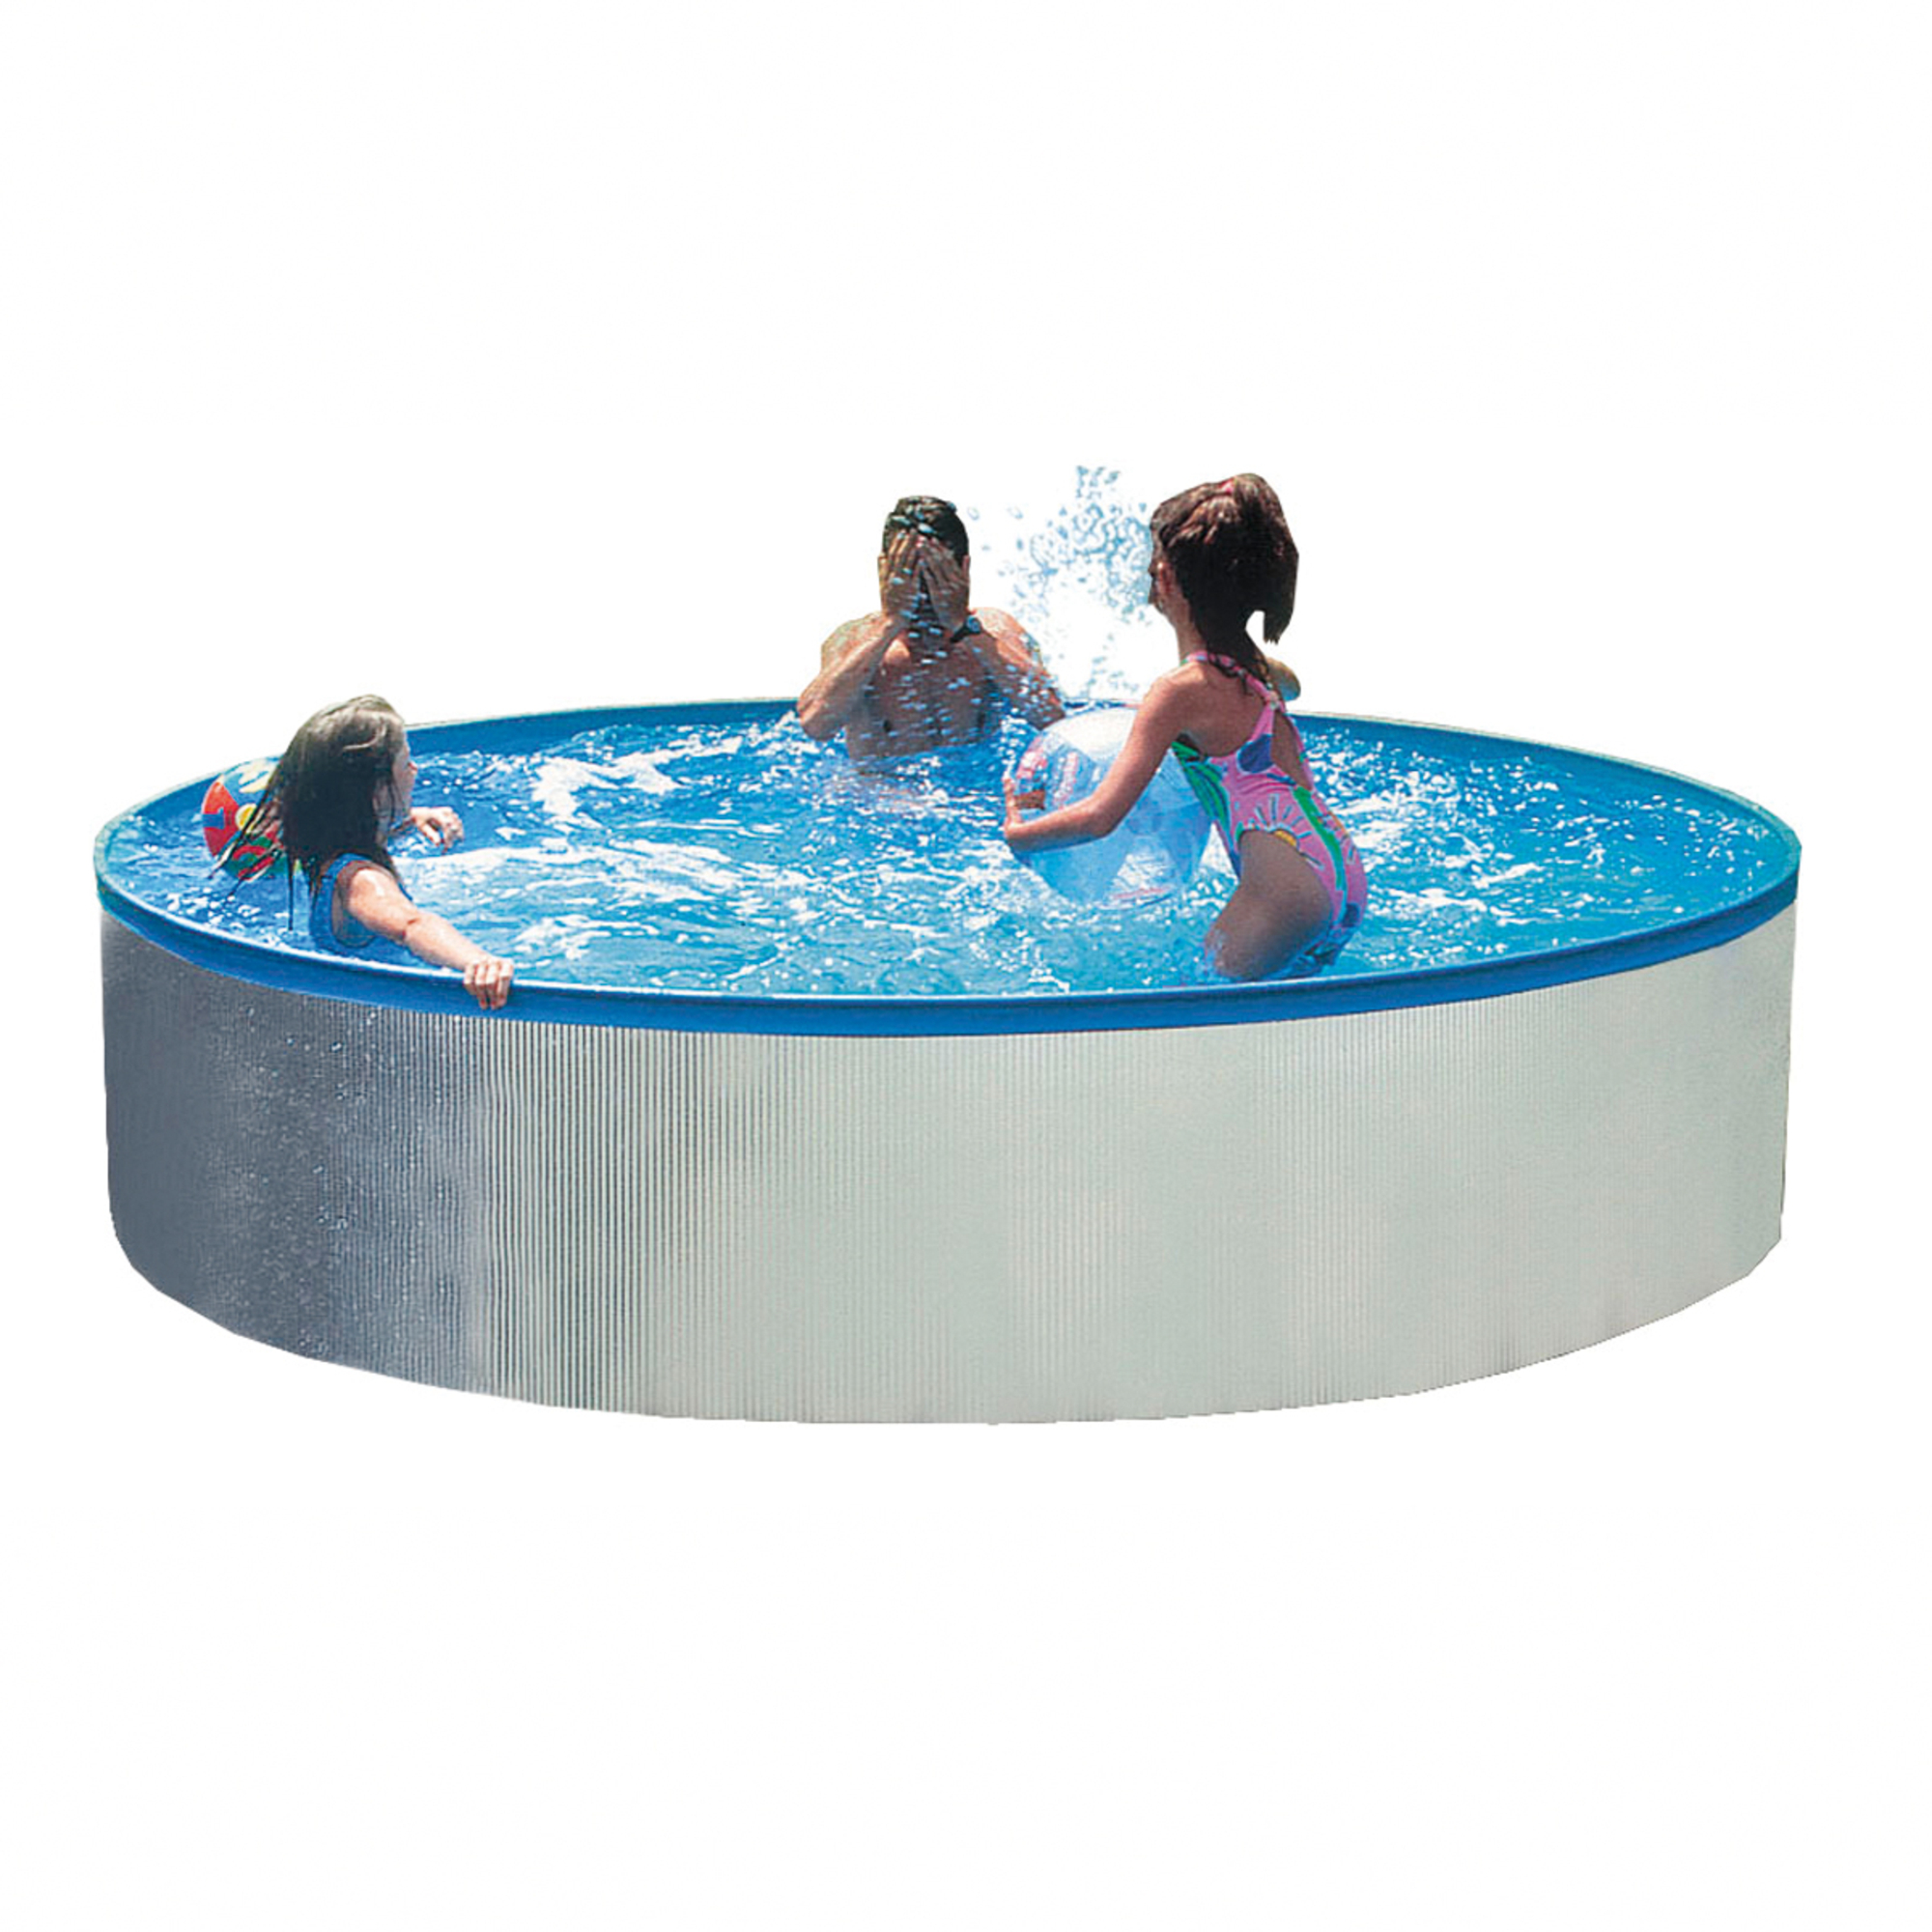 Trigano piscine junior mtal 300 x 060 m solde store for Produit piscine